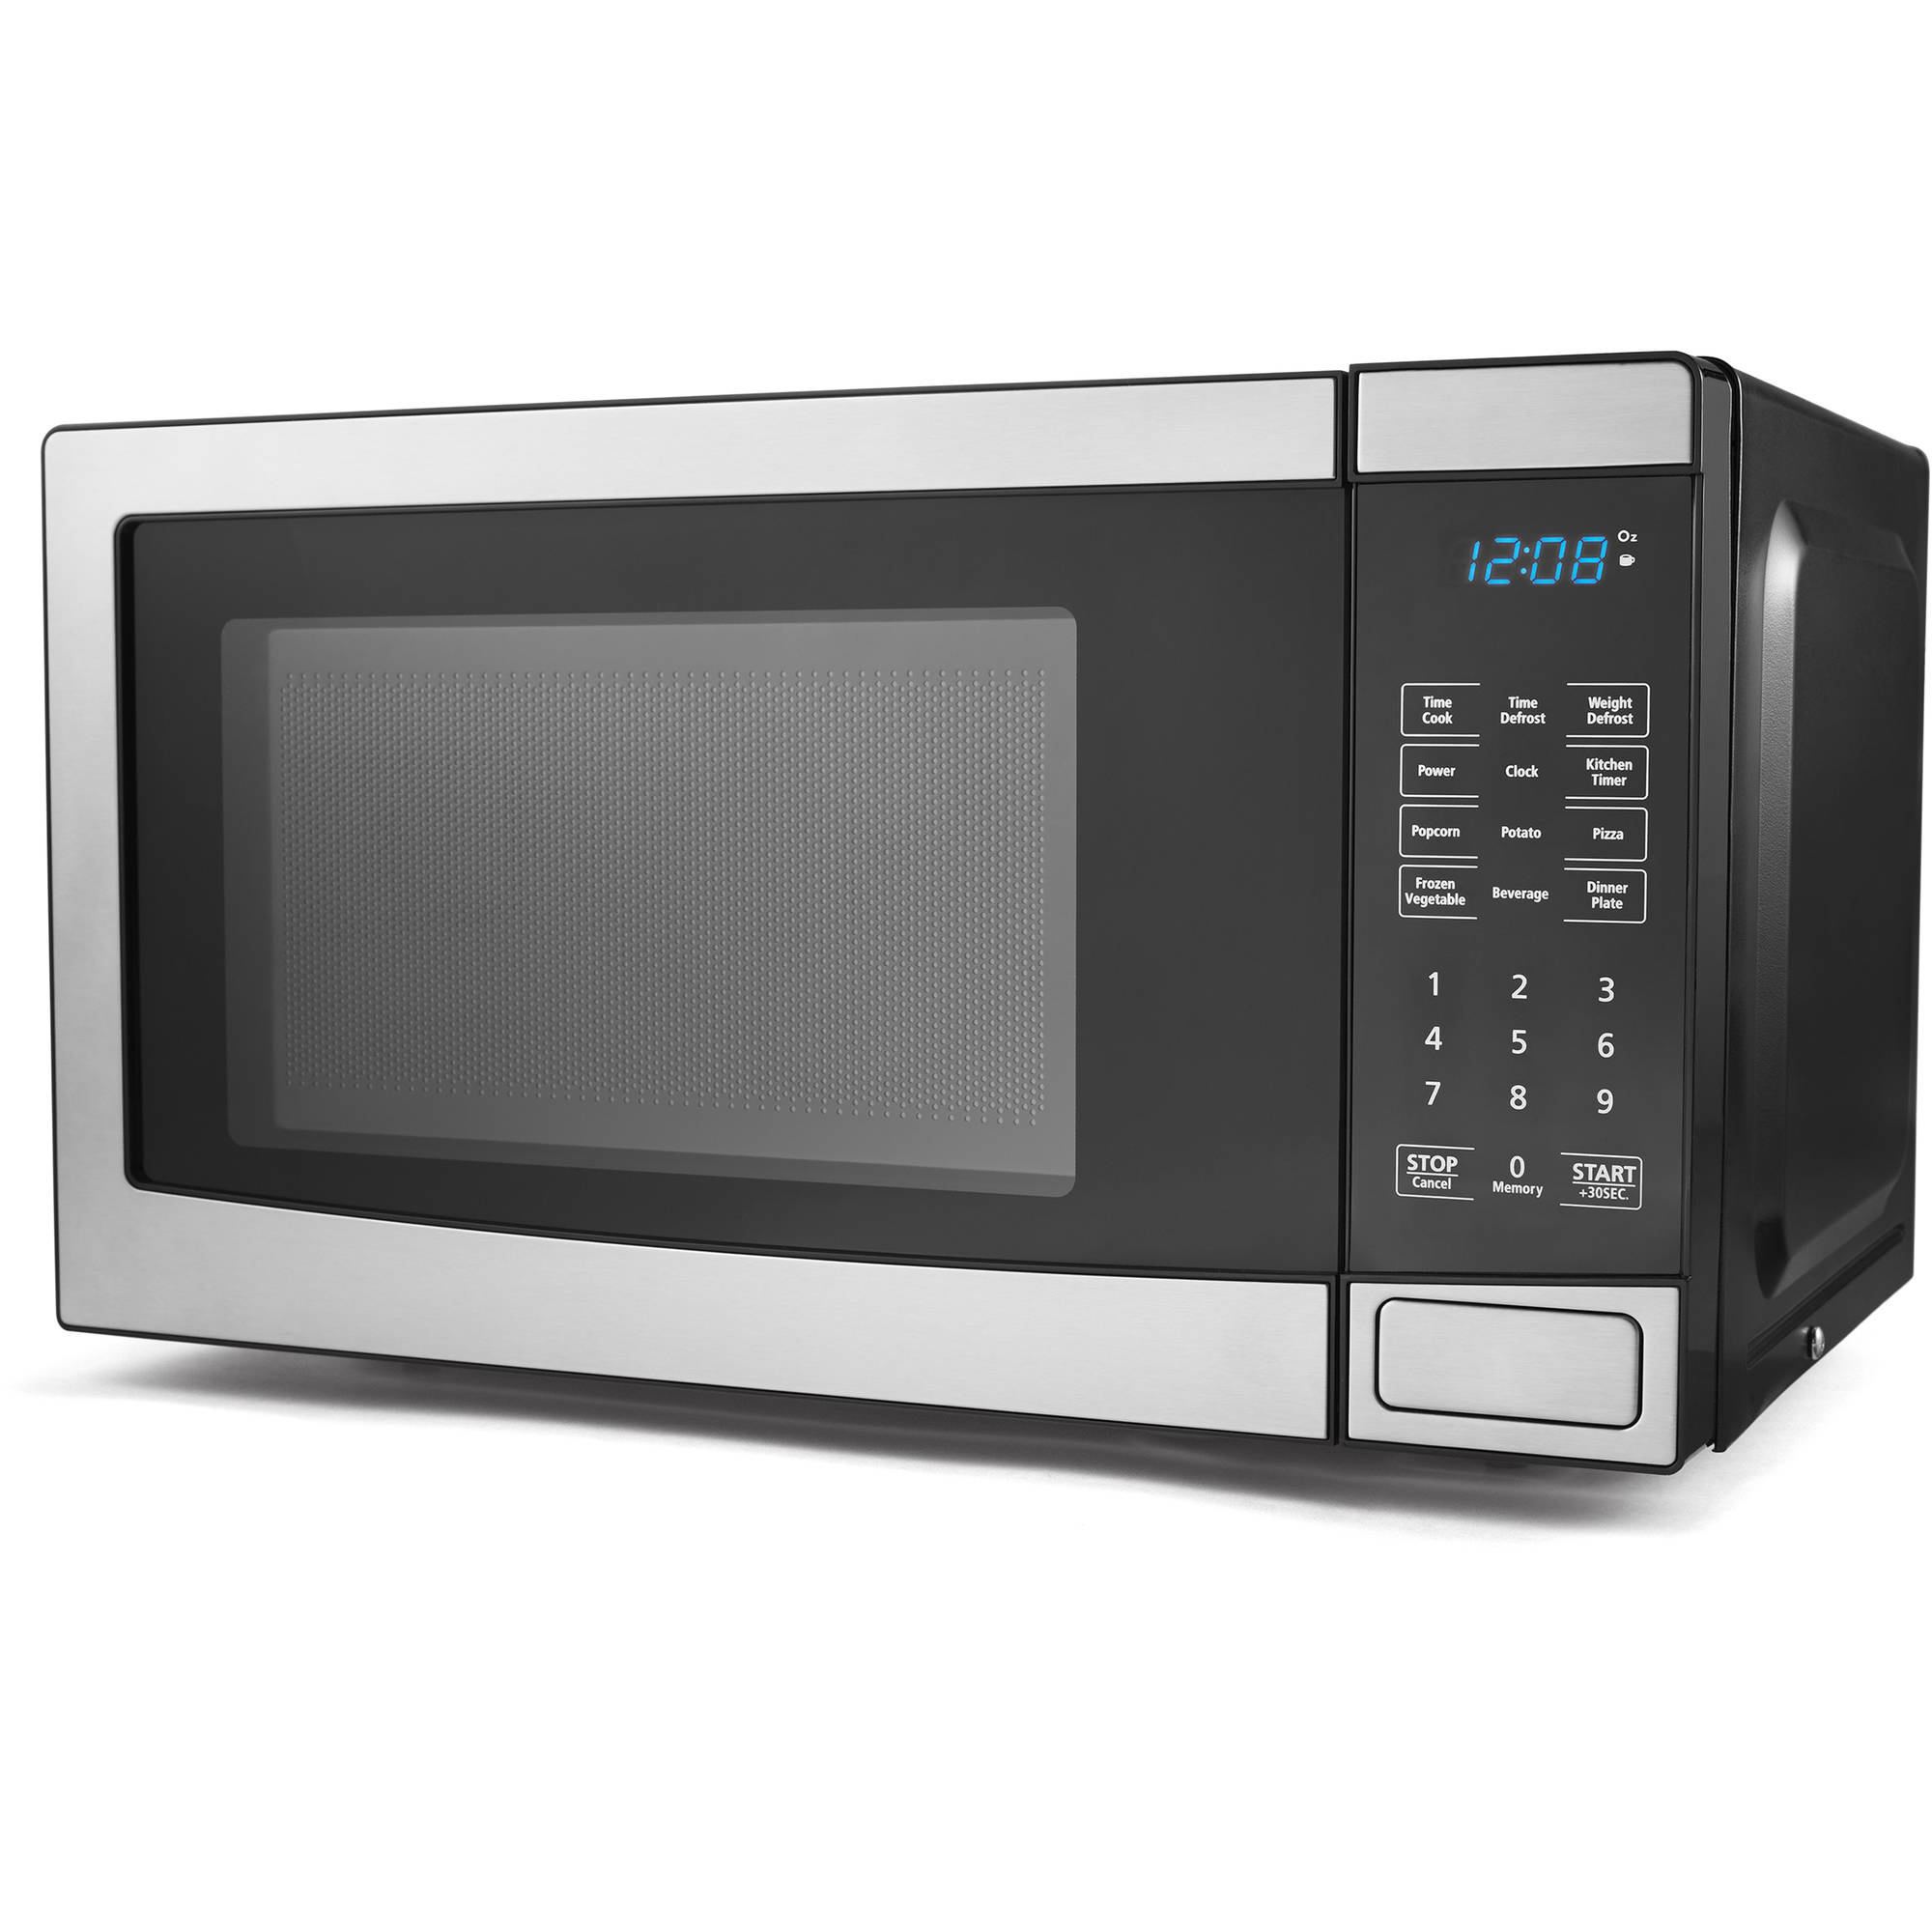 Small Countertop Microwaves Small Rv Convection Microwave Bestmicrowave